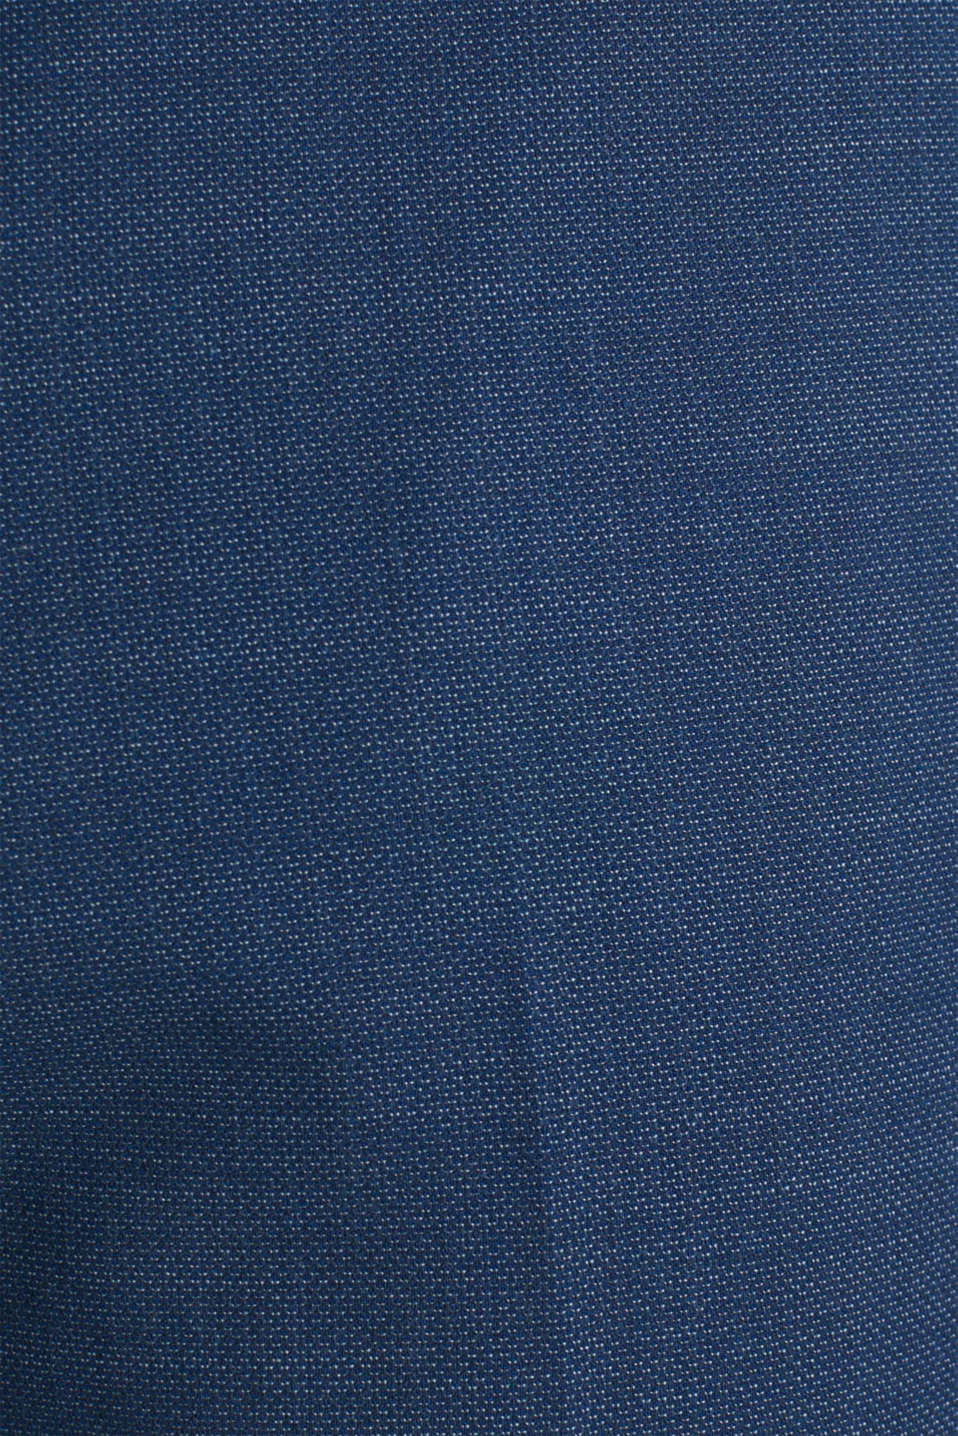 BLUE WOOL mix + match: Trousers, BLUE 5, detail image number 4